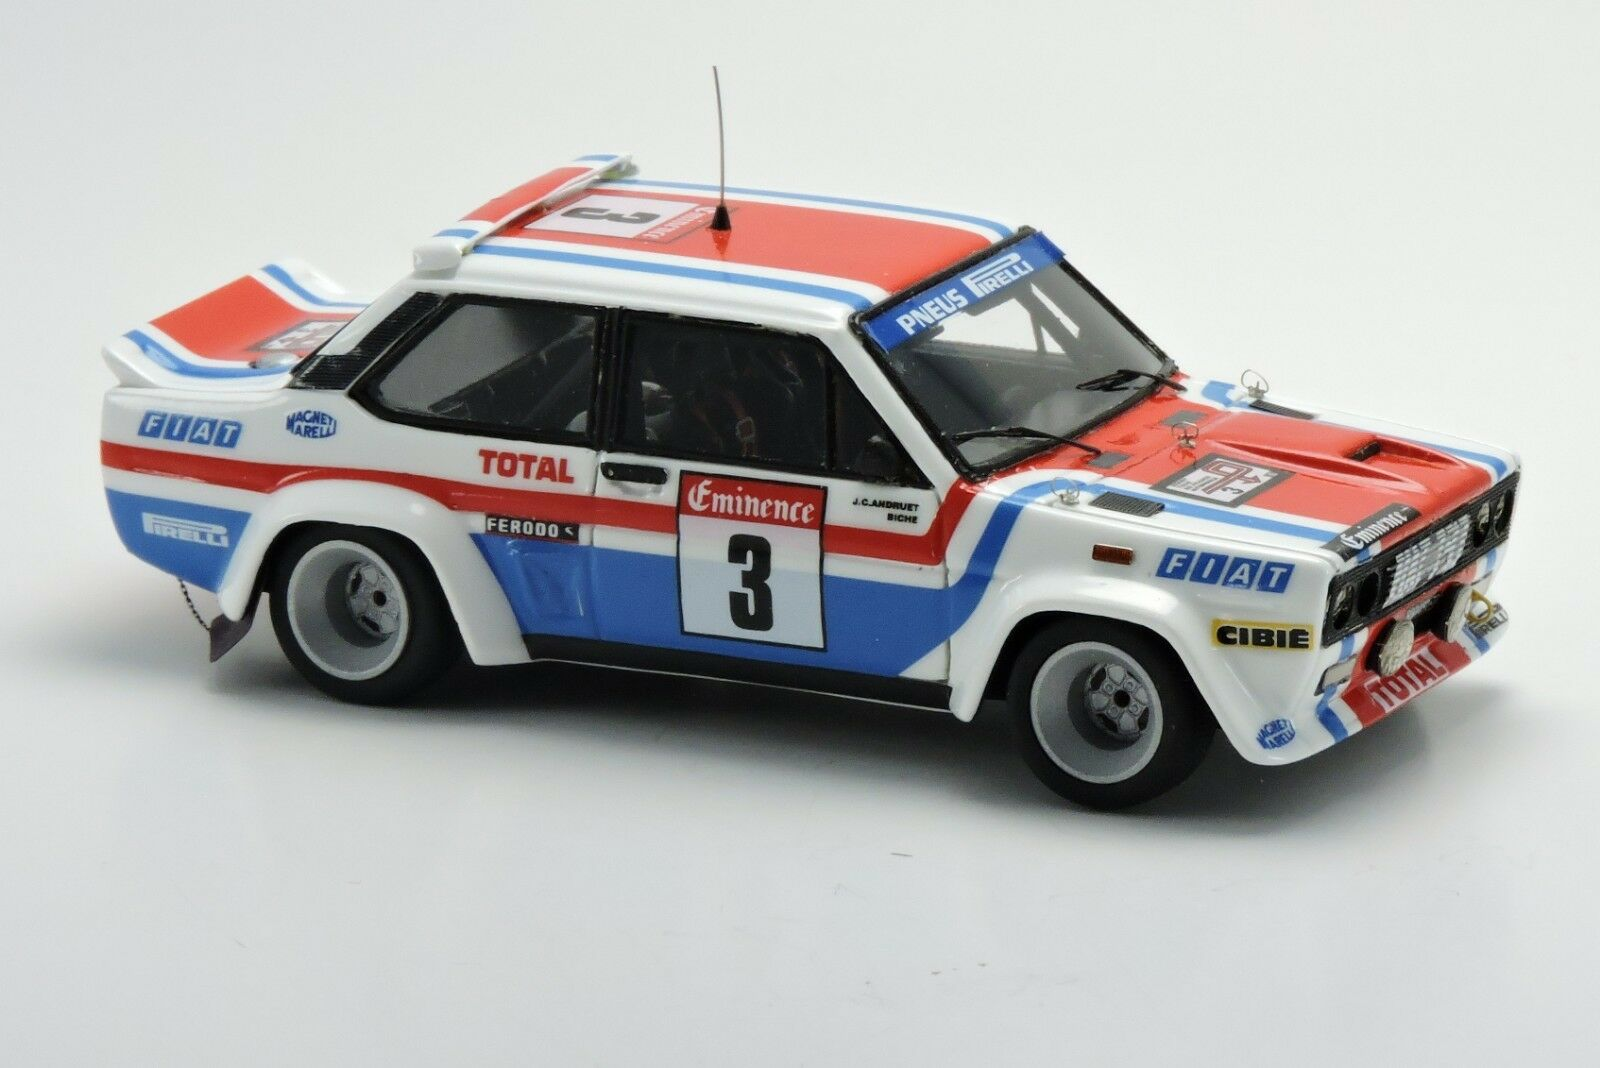 kit Fiat 131 Abarth Fiat France  3 Tour de France 1978 - Arena Models kit 1 43